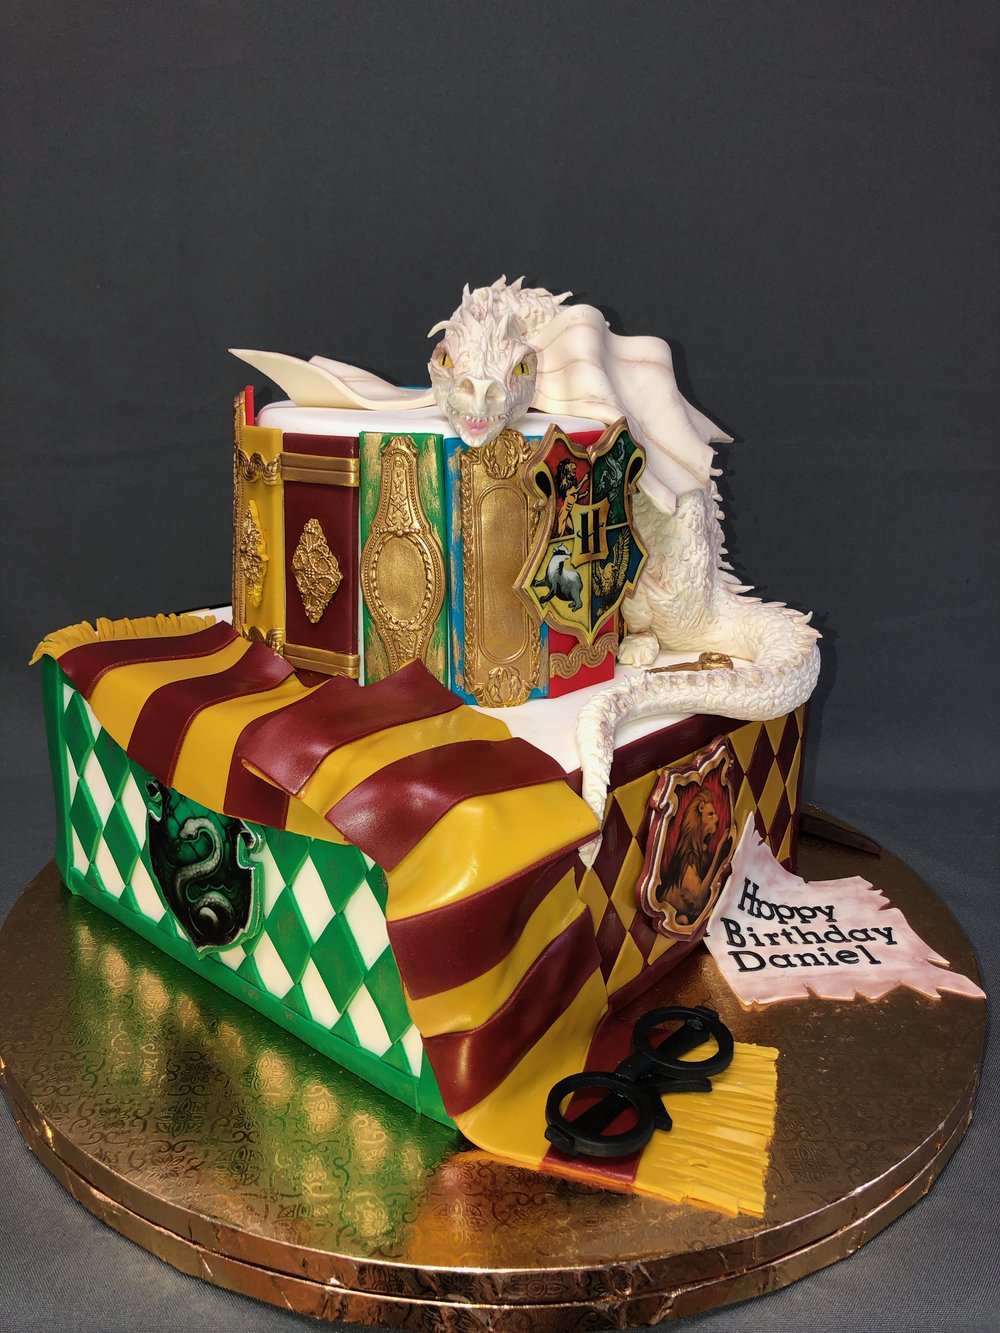 Harry Potter Themed Birthday Cake New Jersey